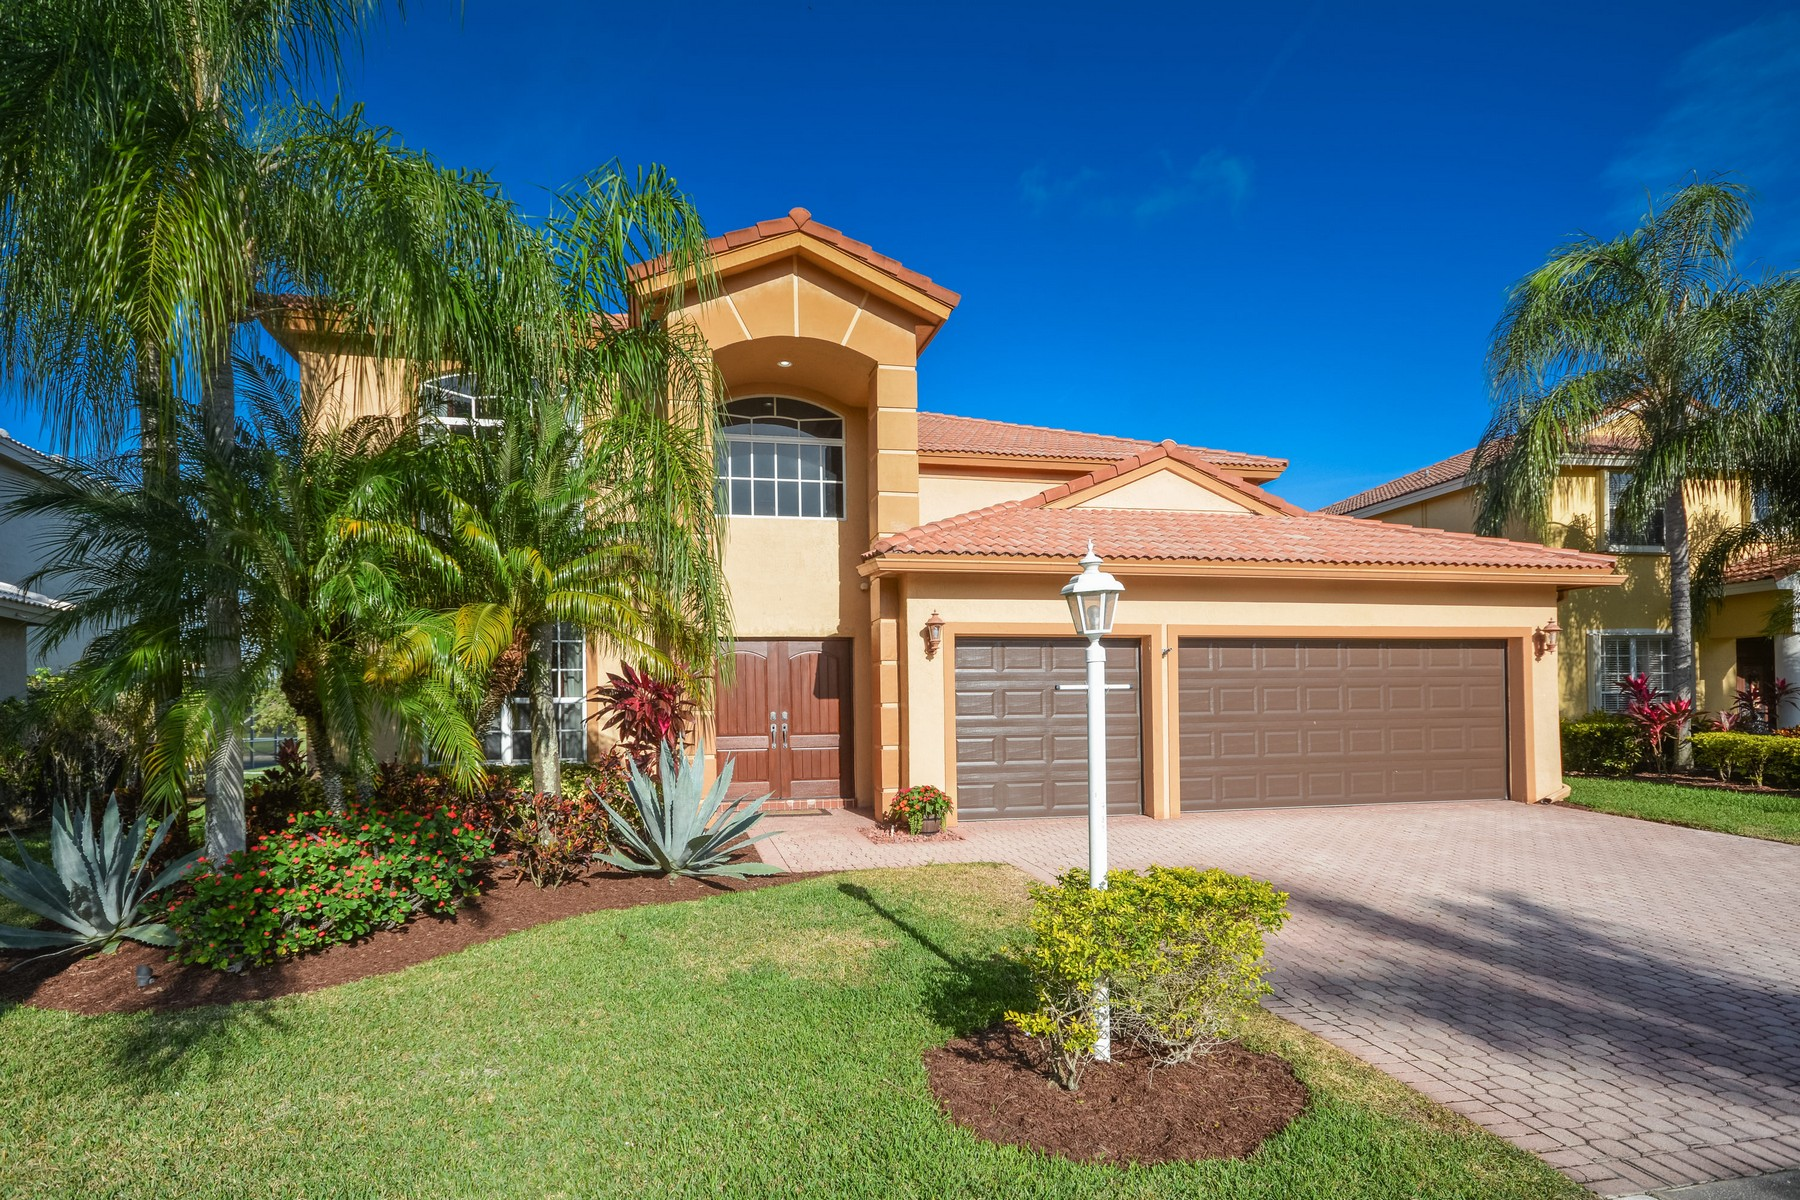 Single Family Home for Sale at 12641 Yardley Dr , Boca Raton, FL 33428 12641 Yardley Dr Boca Raton, Florida, 33428 United States